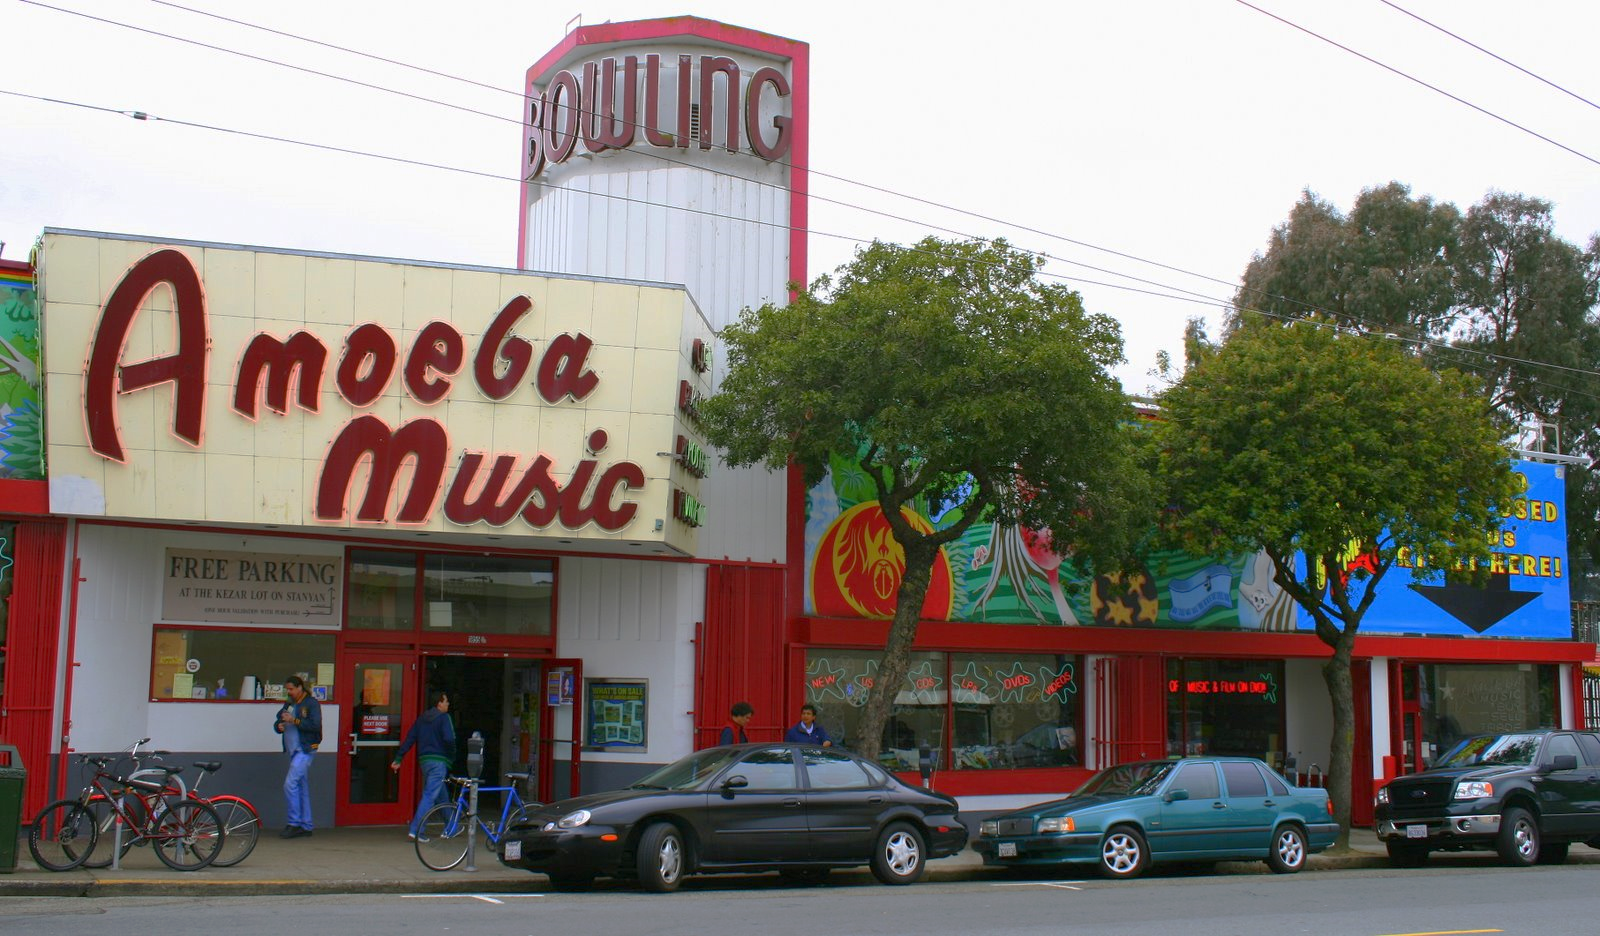 Housed in a former bowling alley, Amoeba Music boasts one of the world's biggest collections of new and used CDs.